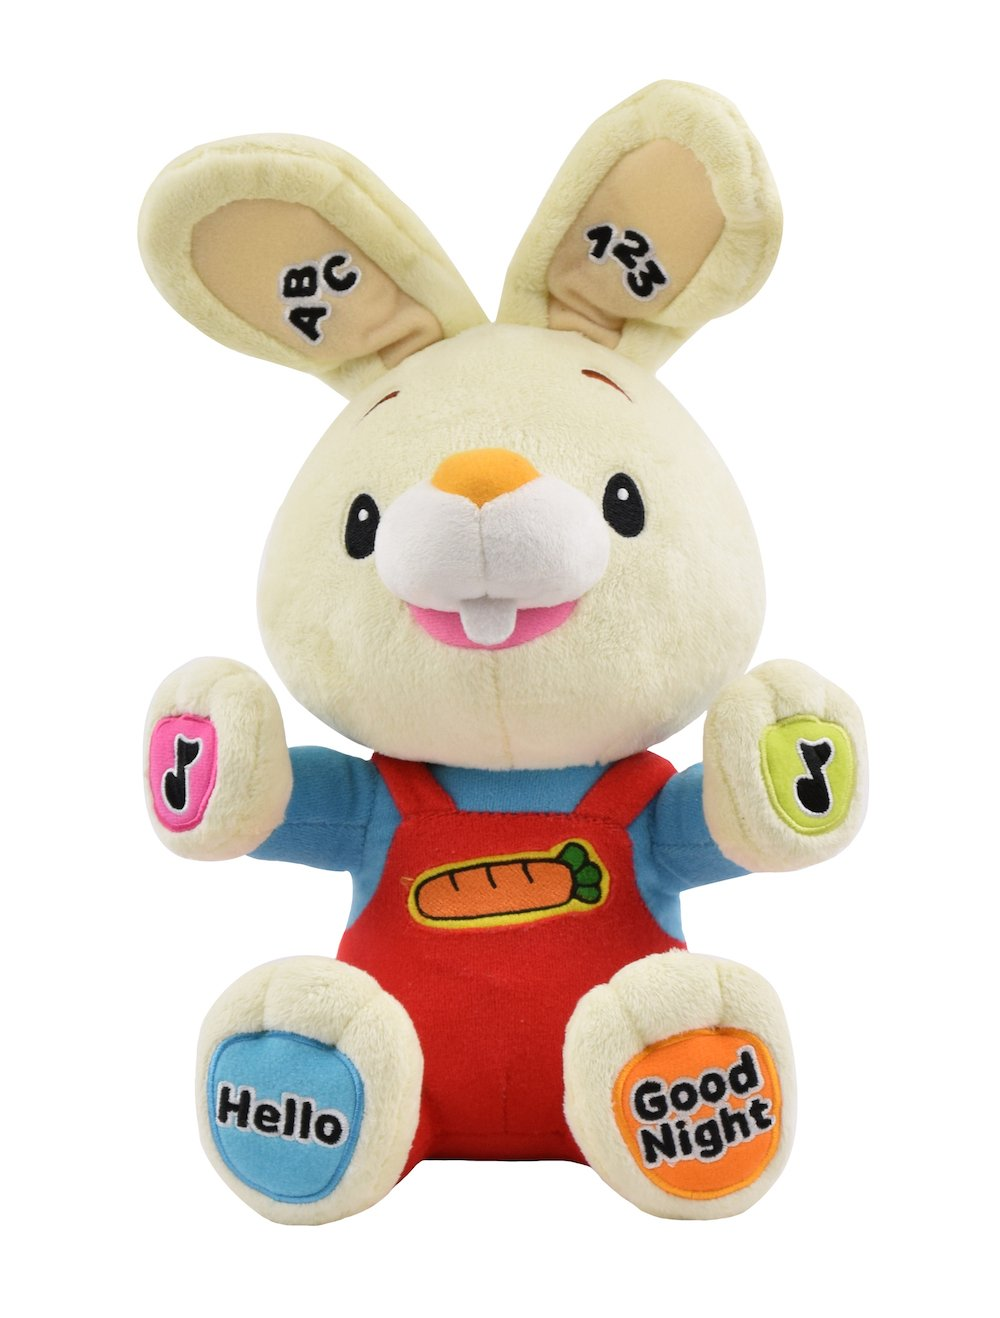 Baby First TV – Play & Sing Harry the Bunny Interactive Toy, Stuffed Animal Plush